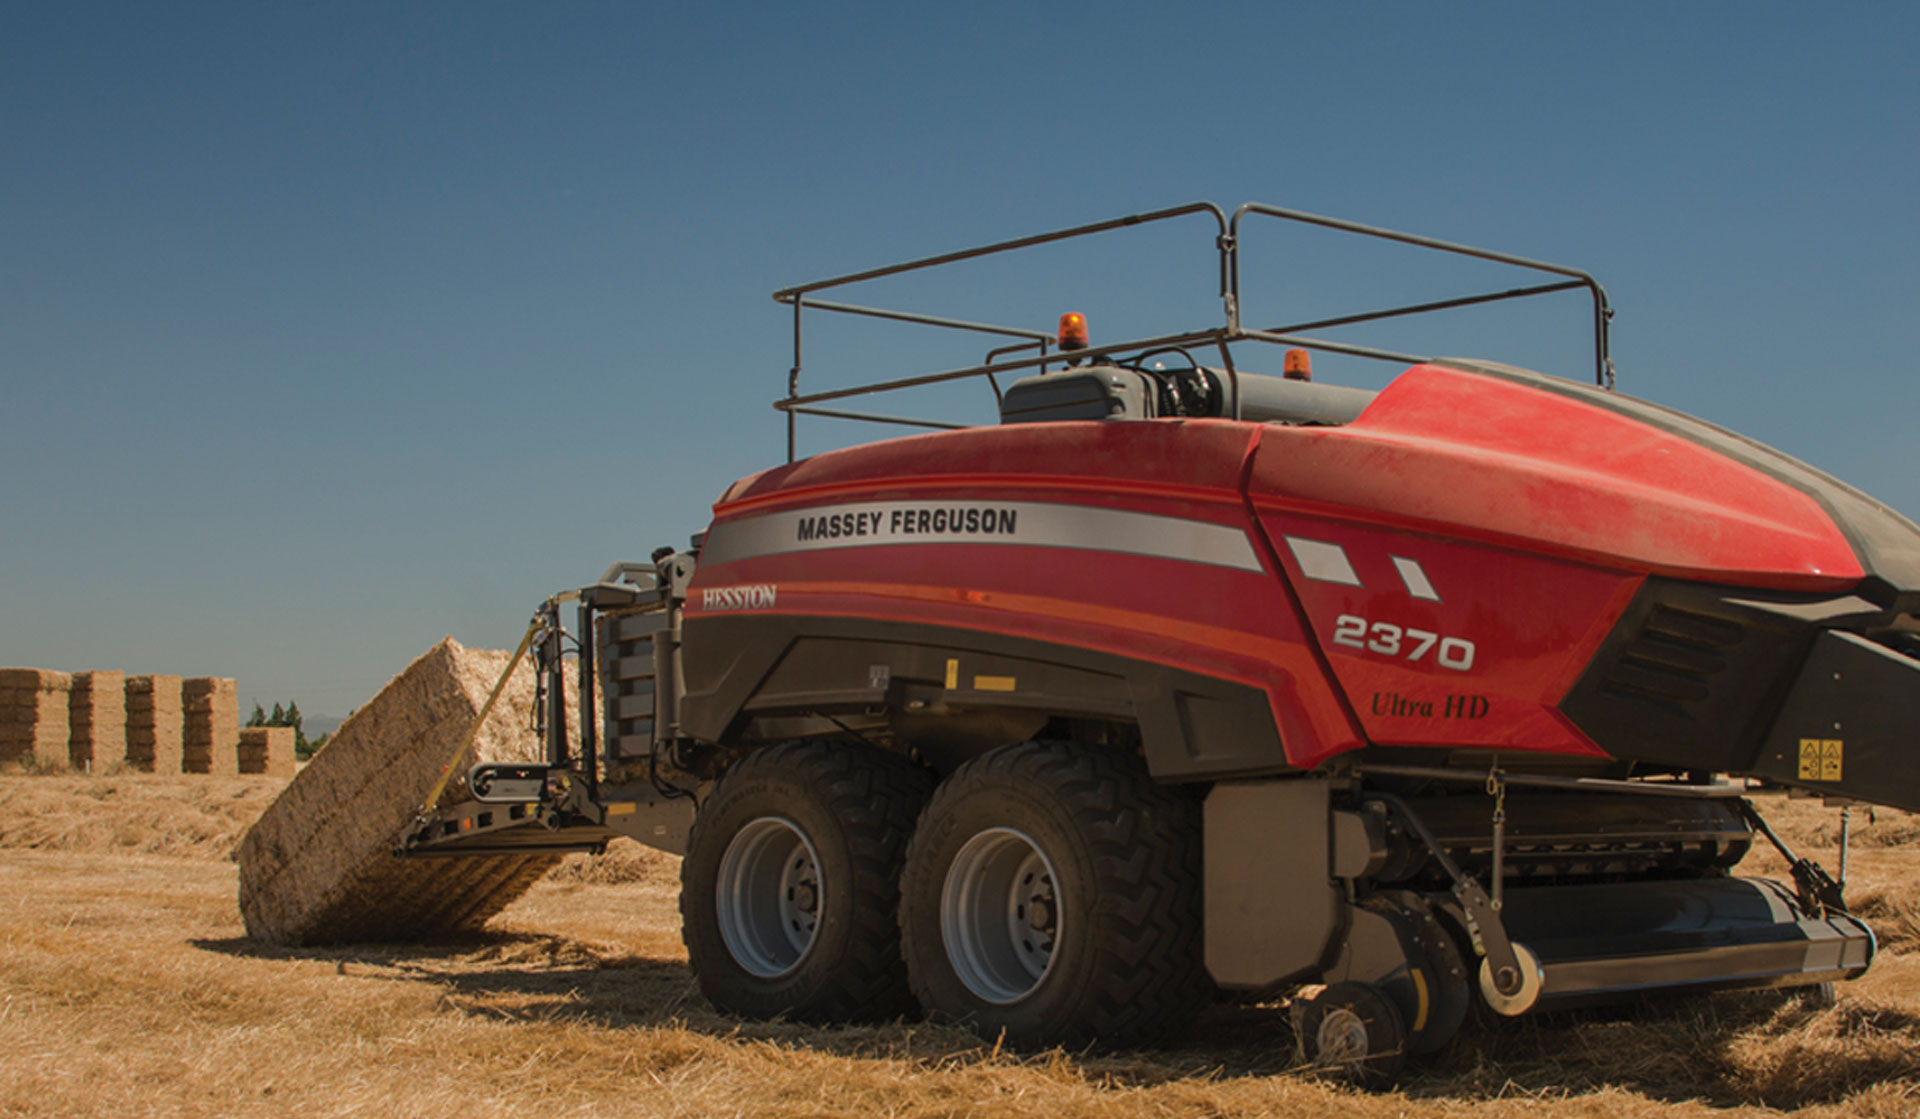 The Massey Ferguson 2370 Ultra HD Large Square Baler produces a golden bale of hay.